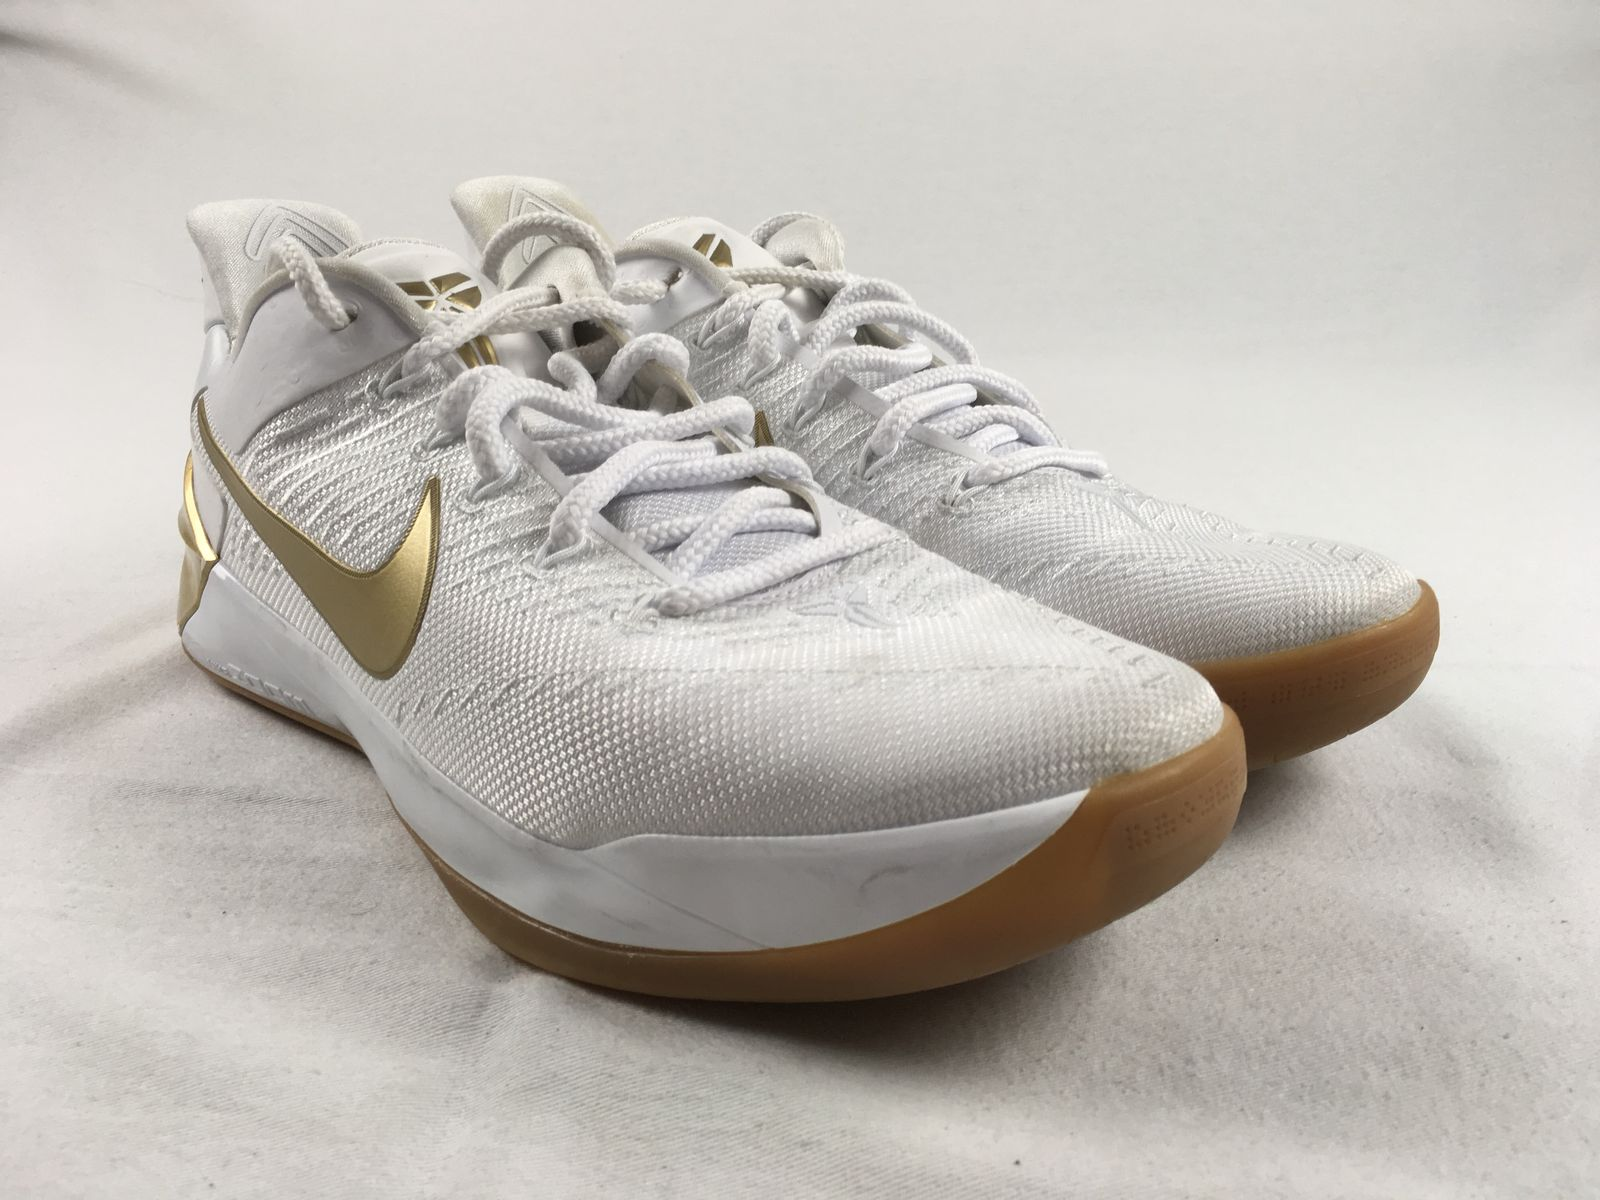 56bb2783145 Details about Nike Kobe A.D. Big Stage - Basketball Shoes (Men s 13.5) Used